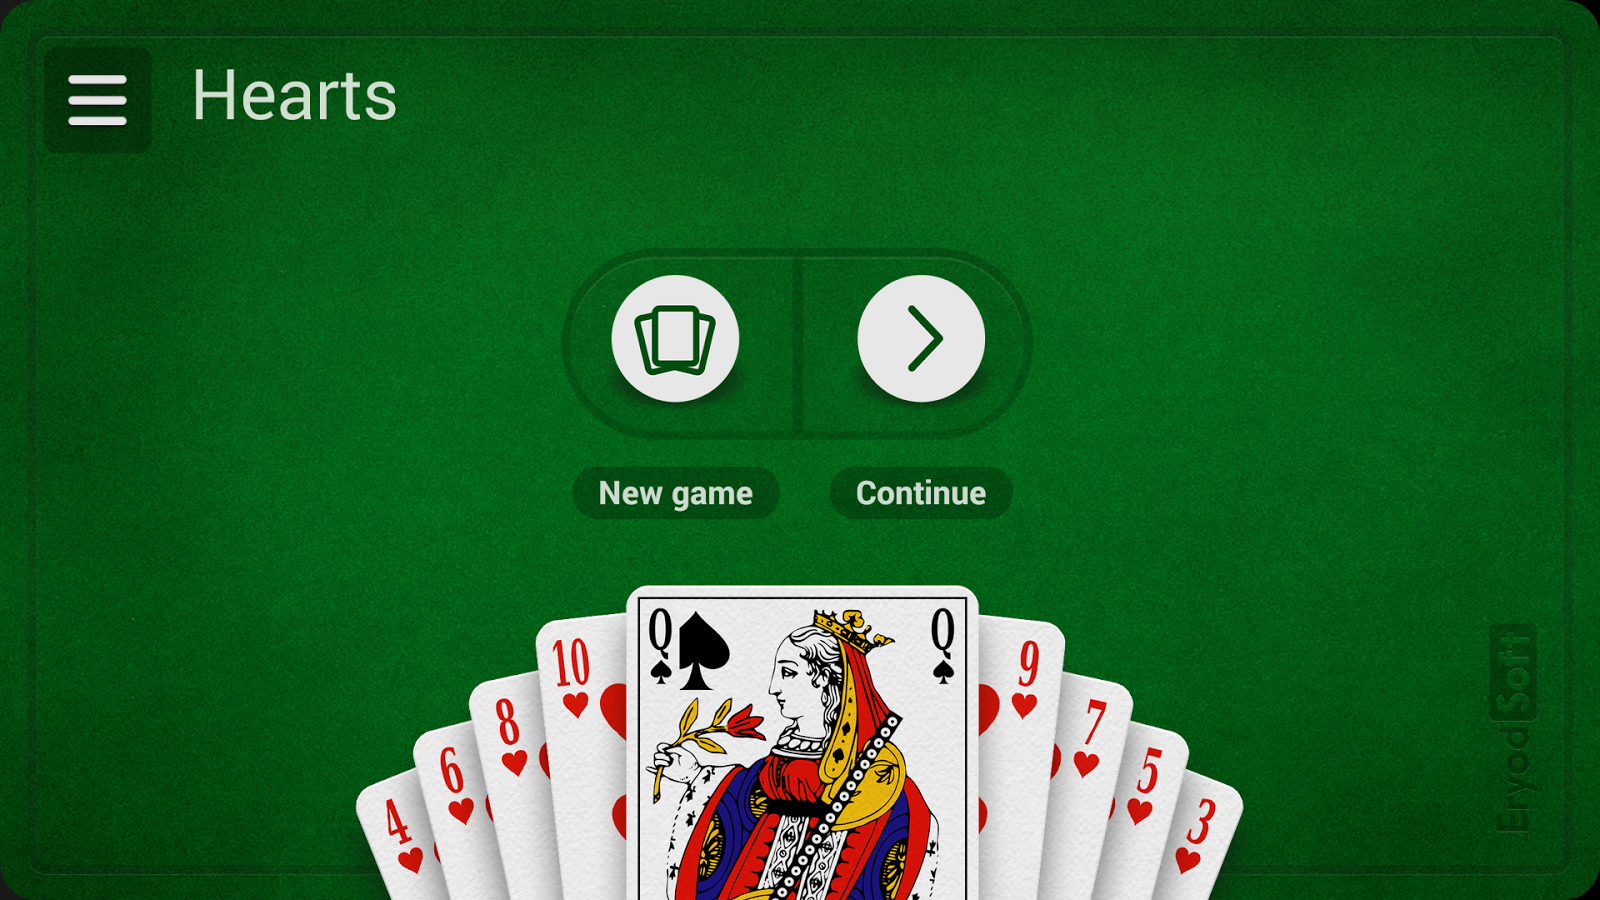 Pin by Play Free Online 32 on Gaming Hearts card game